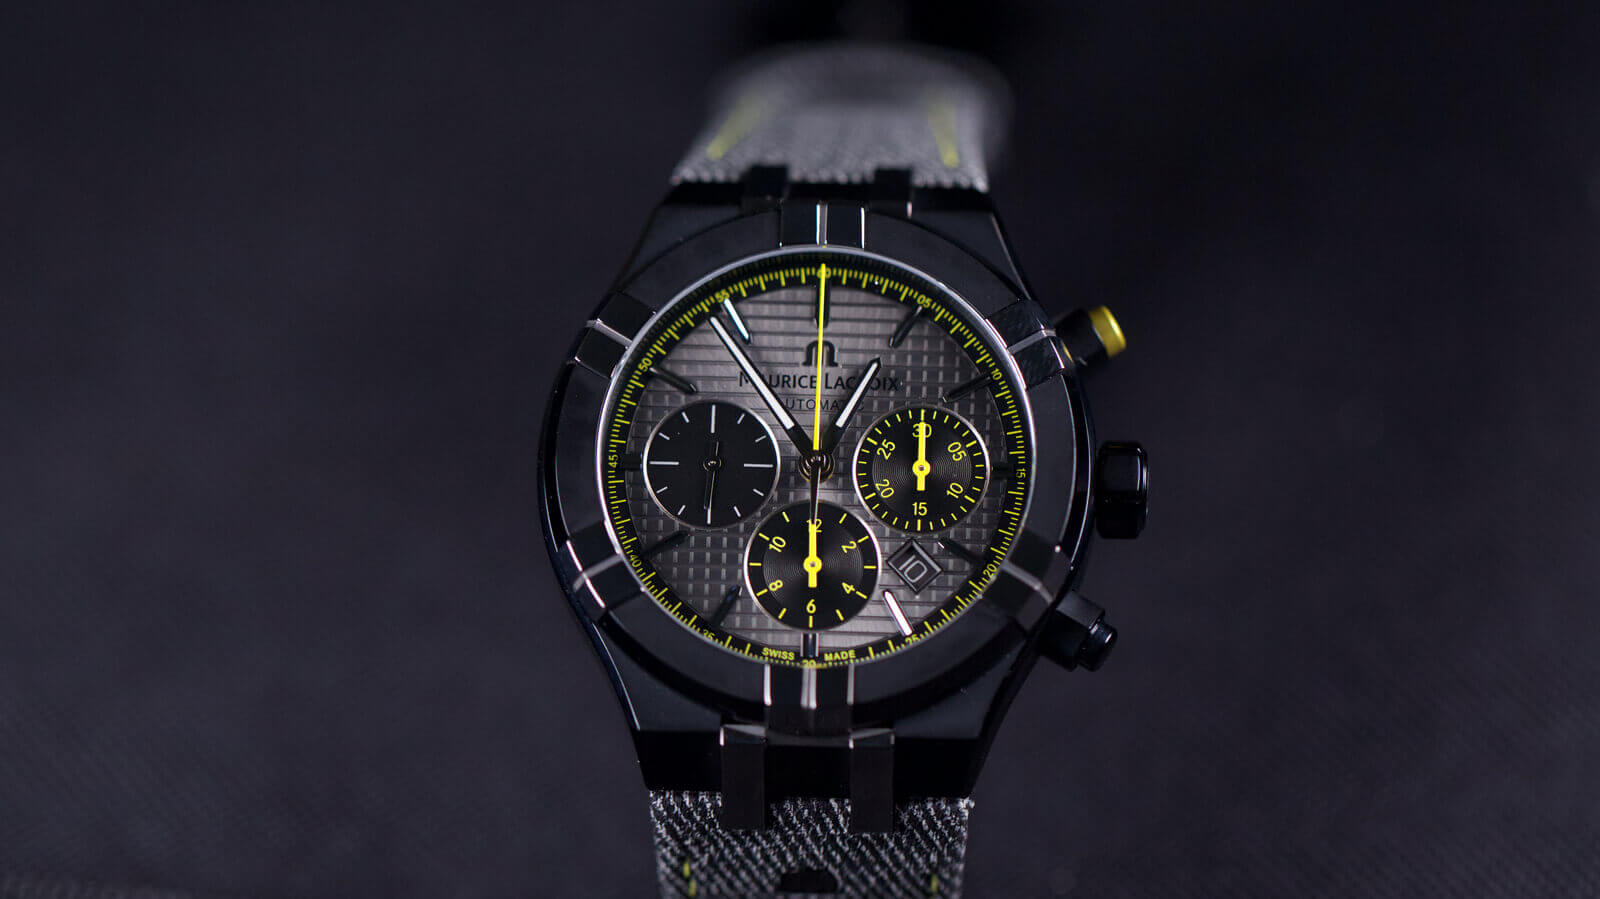 Maurice Lacroix AIKON Automatic Chronograph Limited Edition